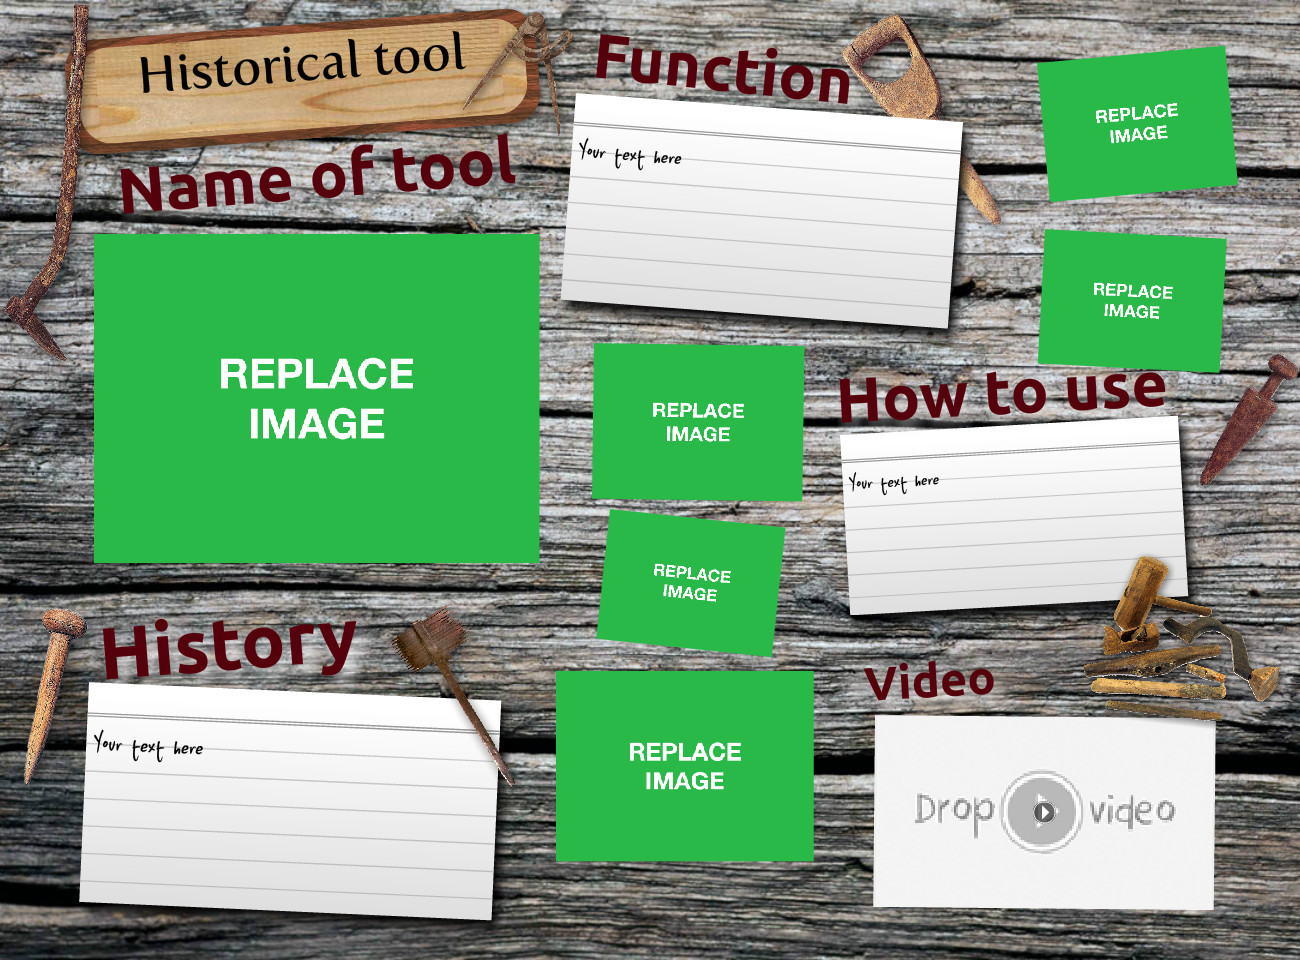 Historical tool